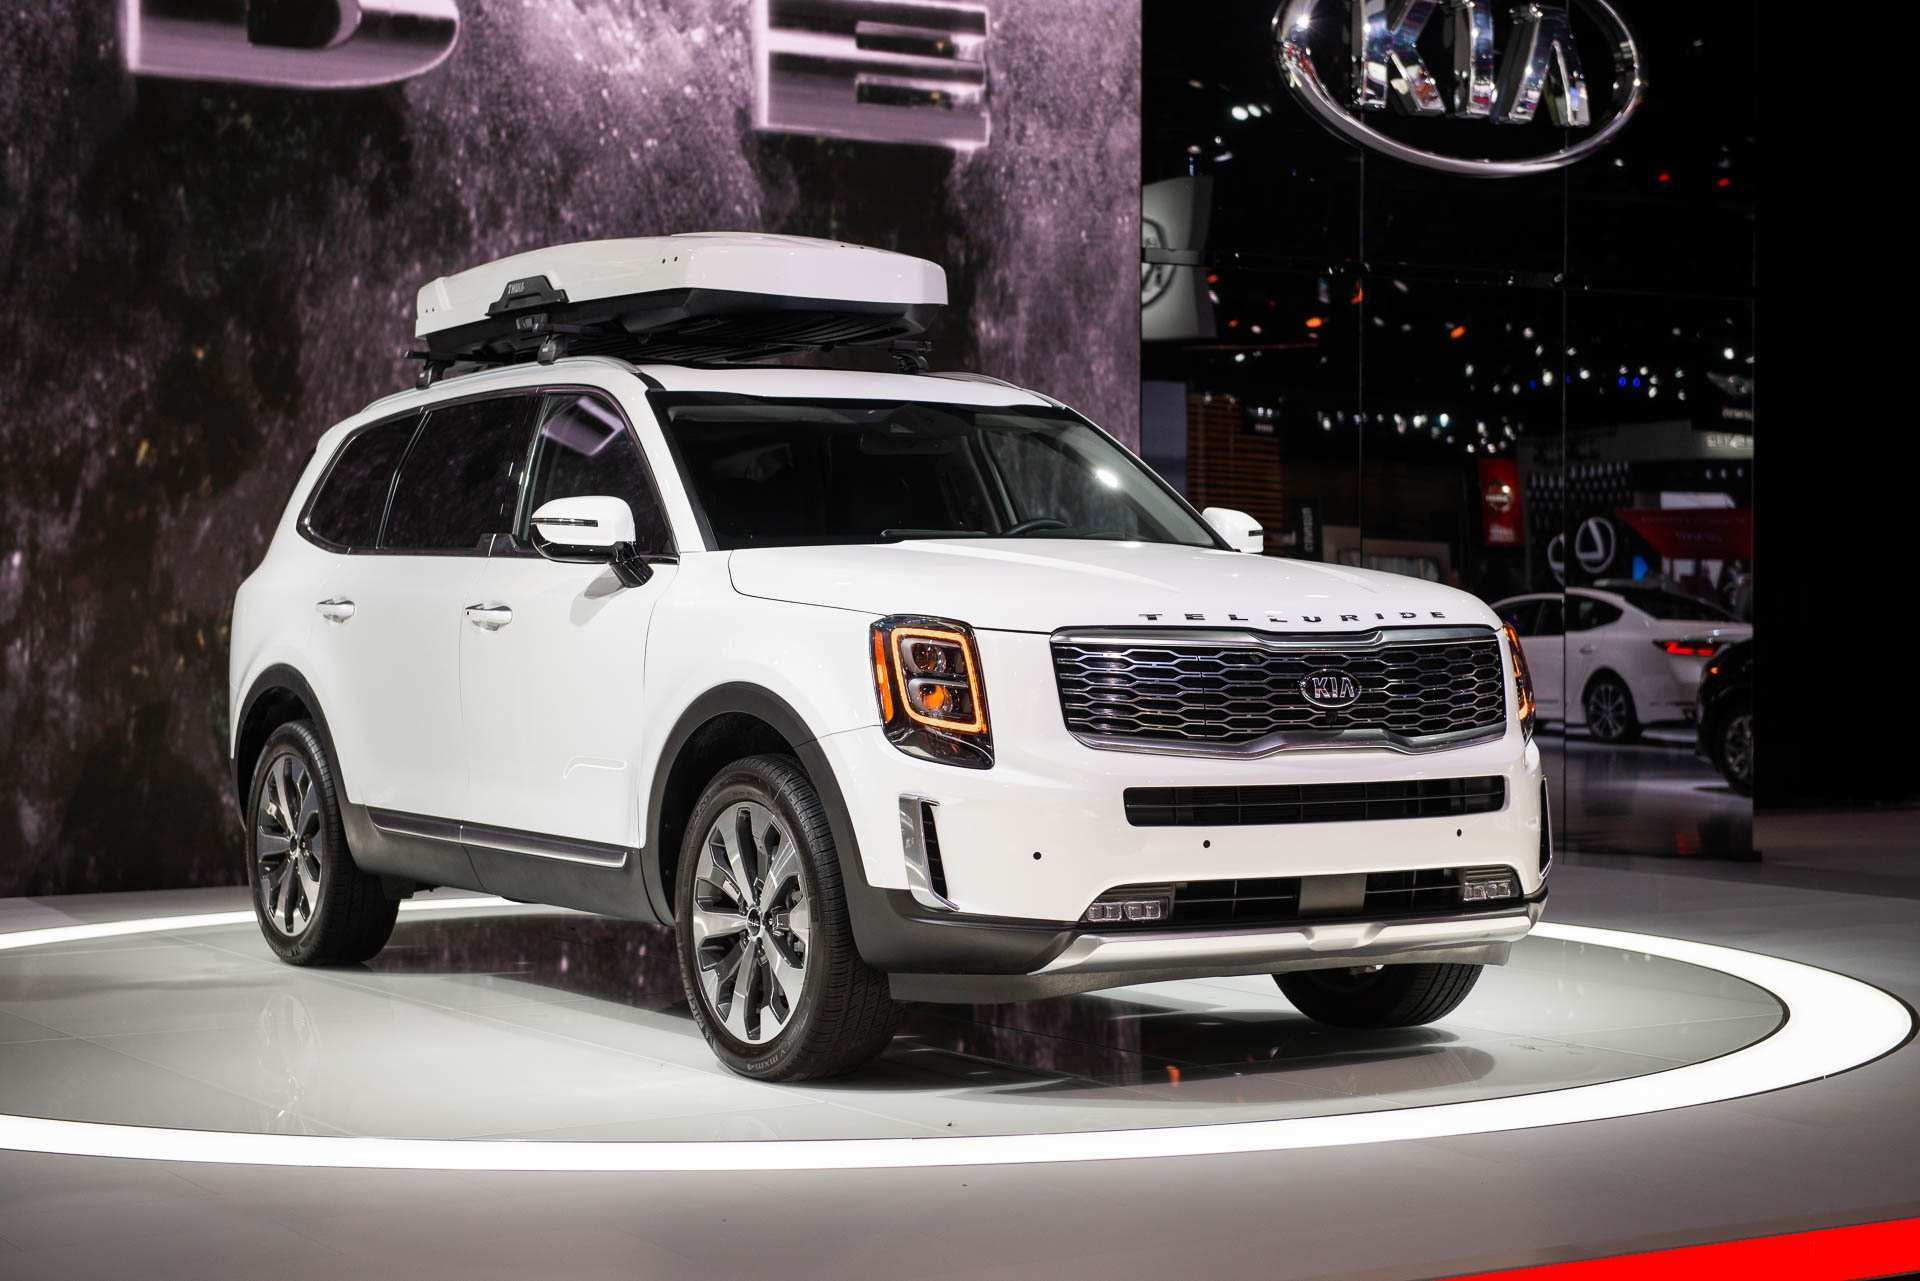 38 The Best 2020 Kia Telluride Images Engine